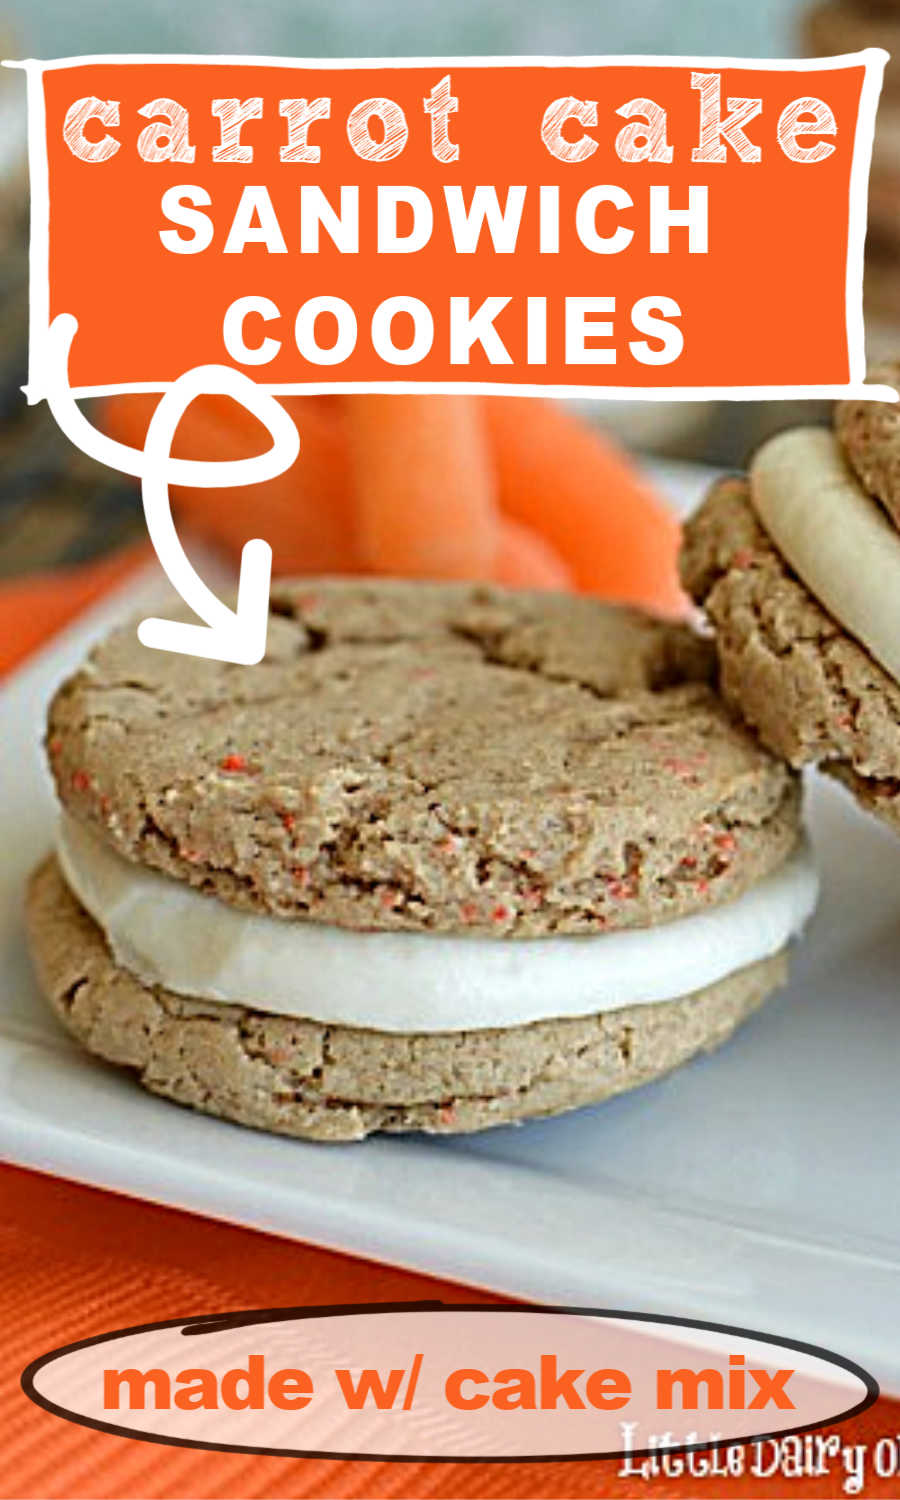 Carrot Cake Sandwich Cookies with cream cheese filling.